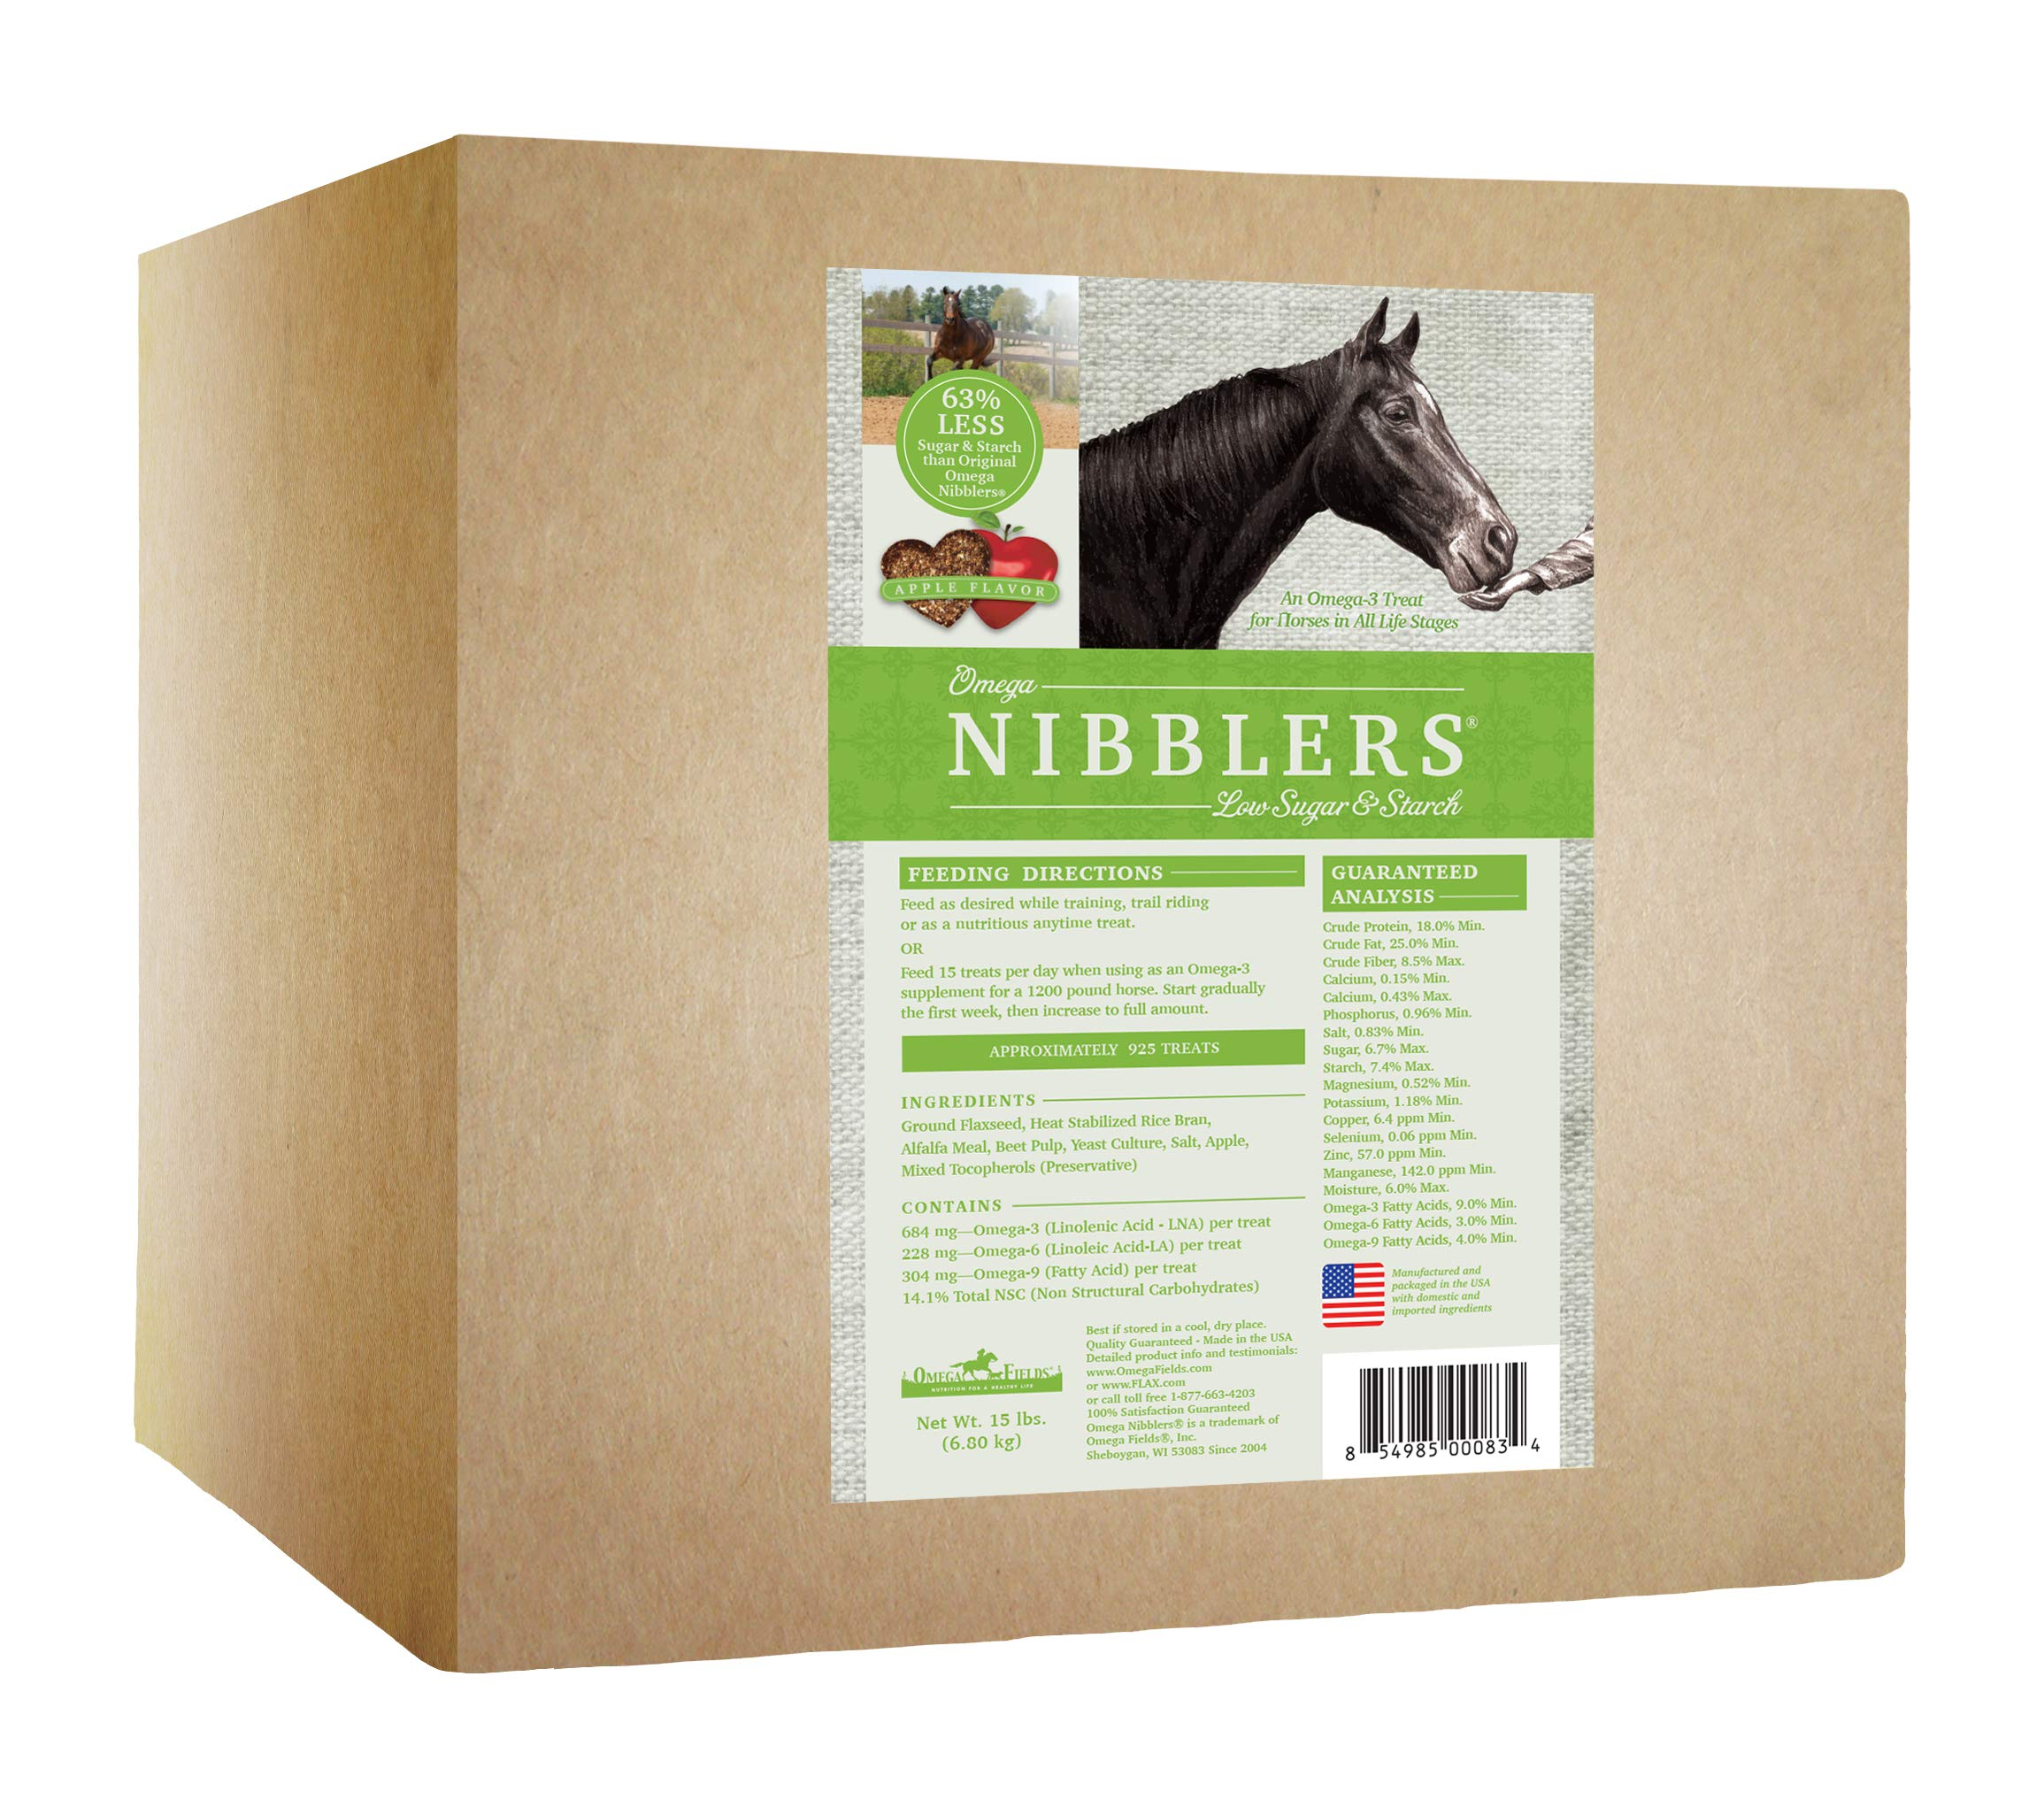 Omega Nibblers Low Sugar & Starch, 15 lb by Omega